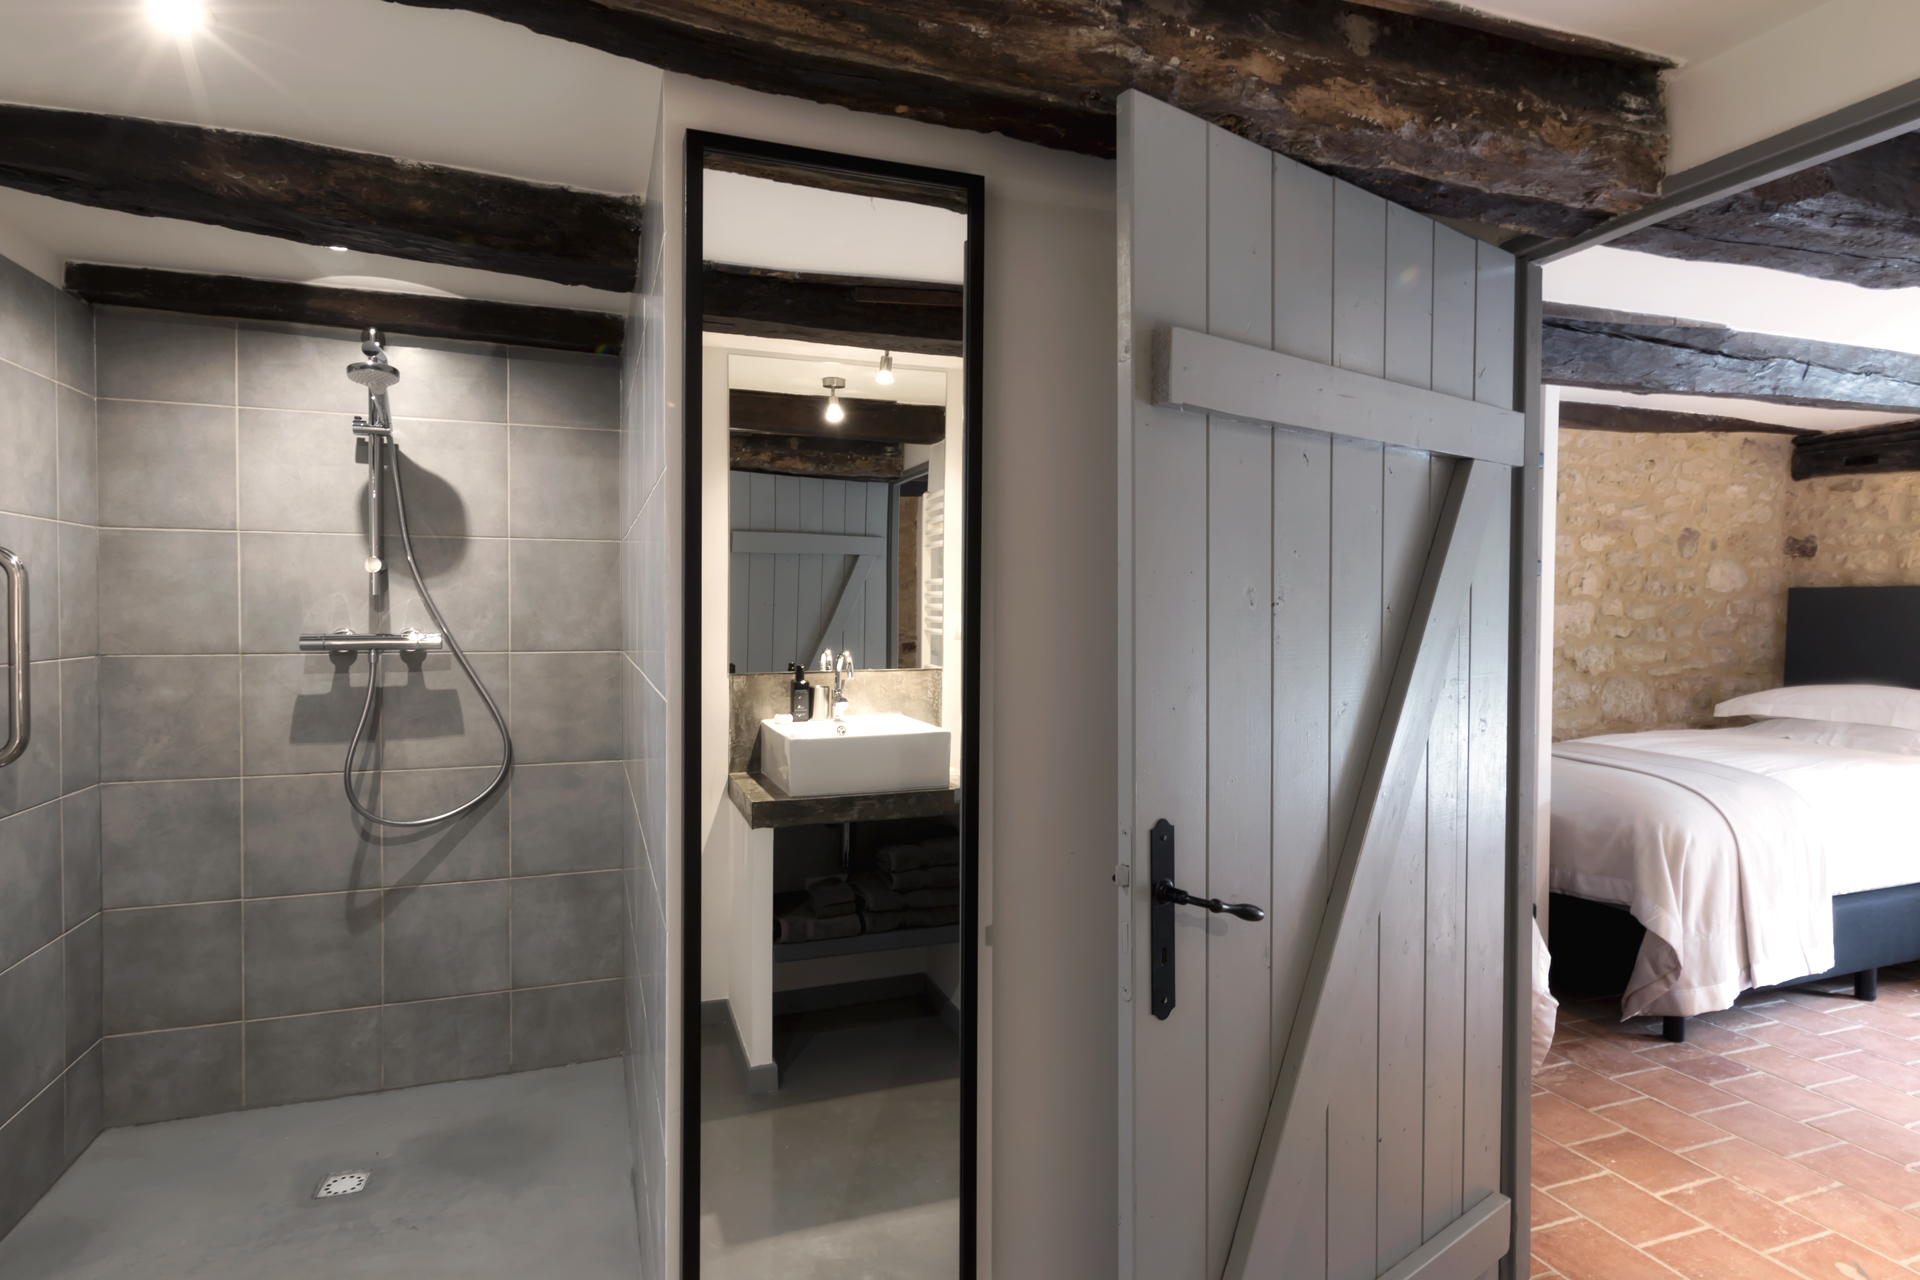 Bedroom 4 and its en suite bathroom with walk-in shower, in Le Mas, a large holiday home near Sarlat in the Dordogne